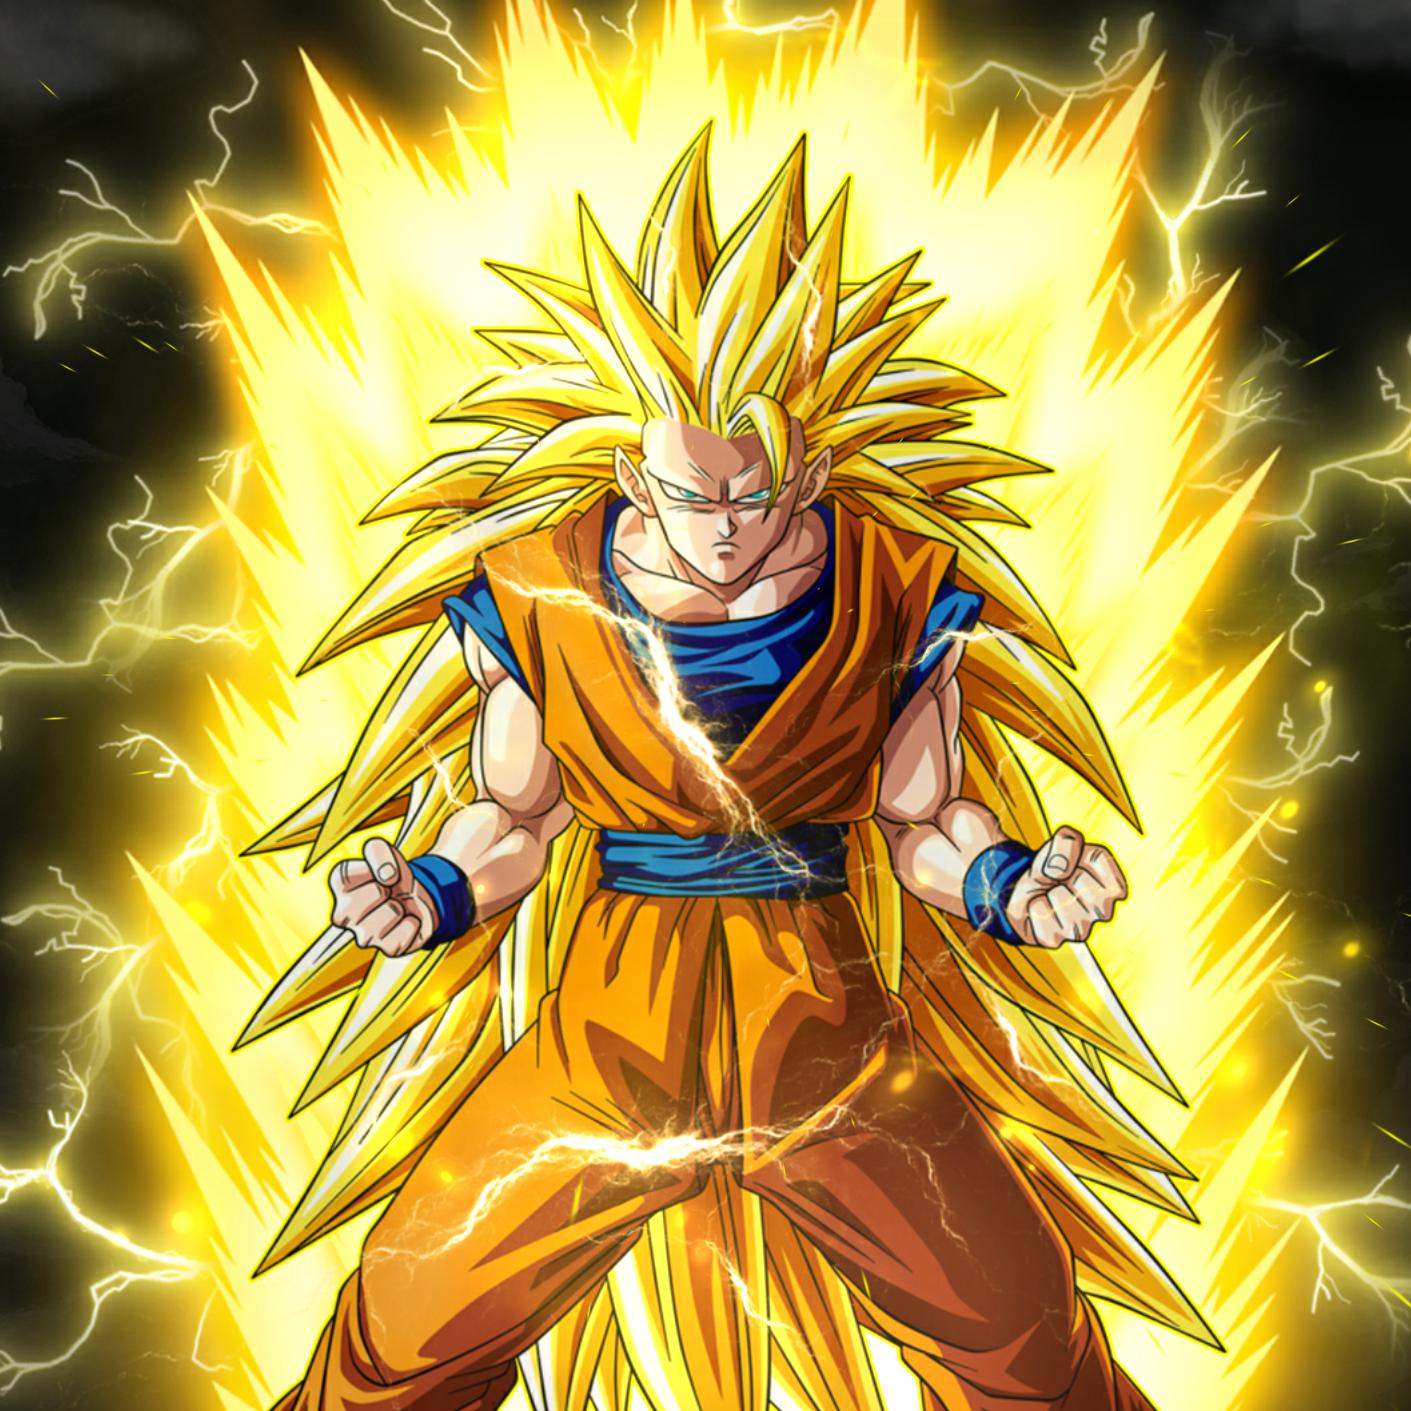 Steam Workshop Super Saiyan 3 Goku Ssj3